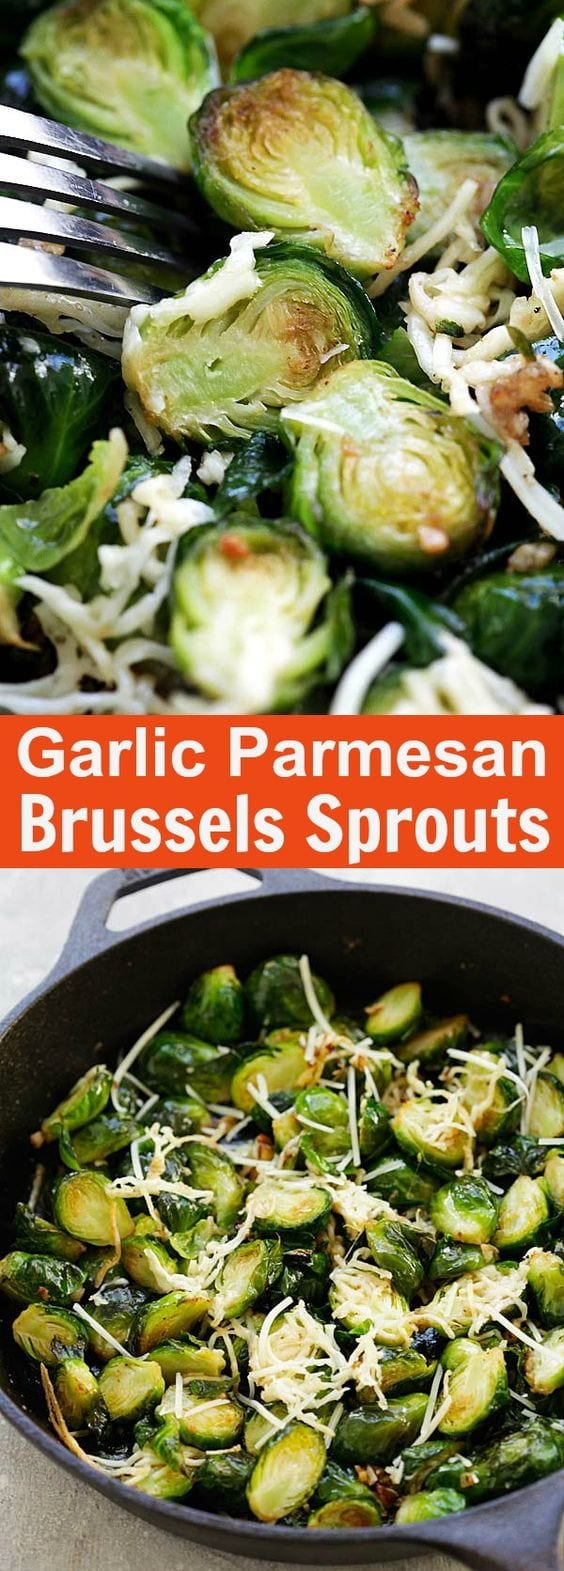 Roasted brussels sprouts with garlic and Parmesan cheese. This oven-roasted side dish is full of flavors, healthy, packed with nutrition and takes only 10 minutes active time | rasamalaysia.com